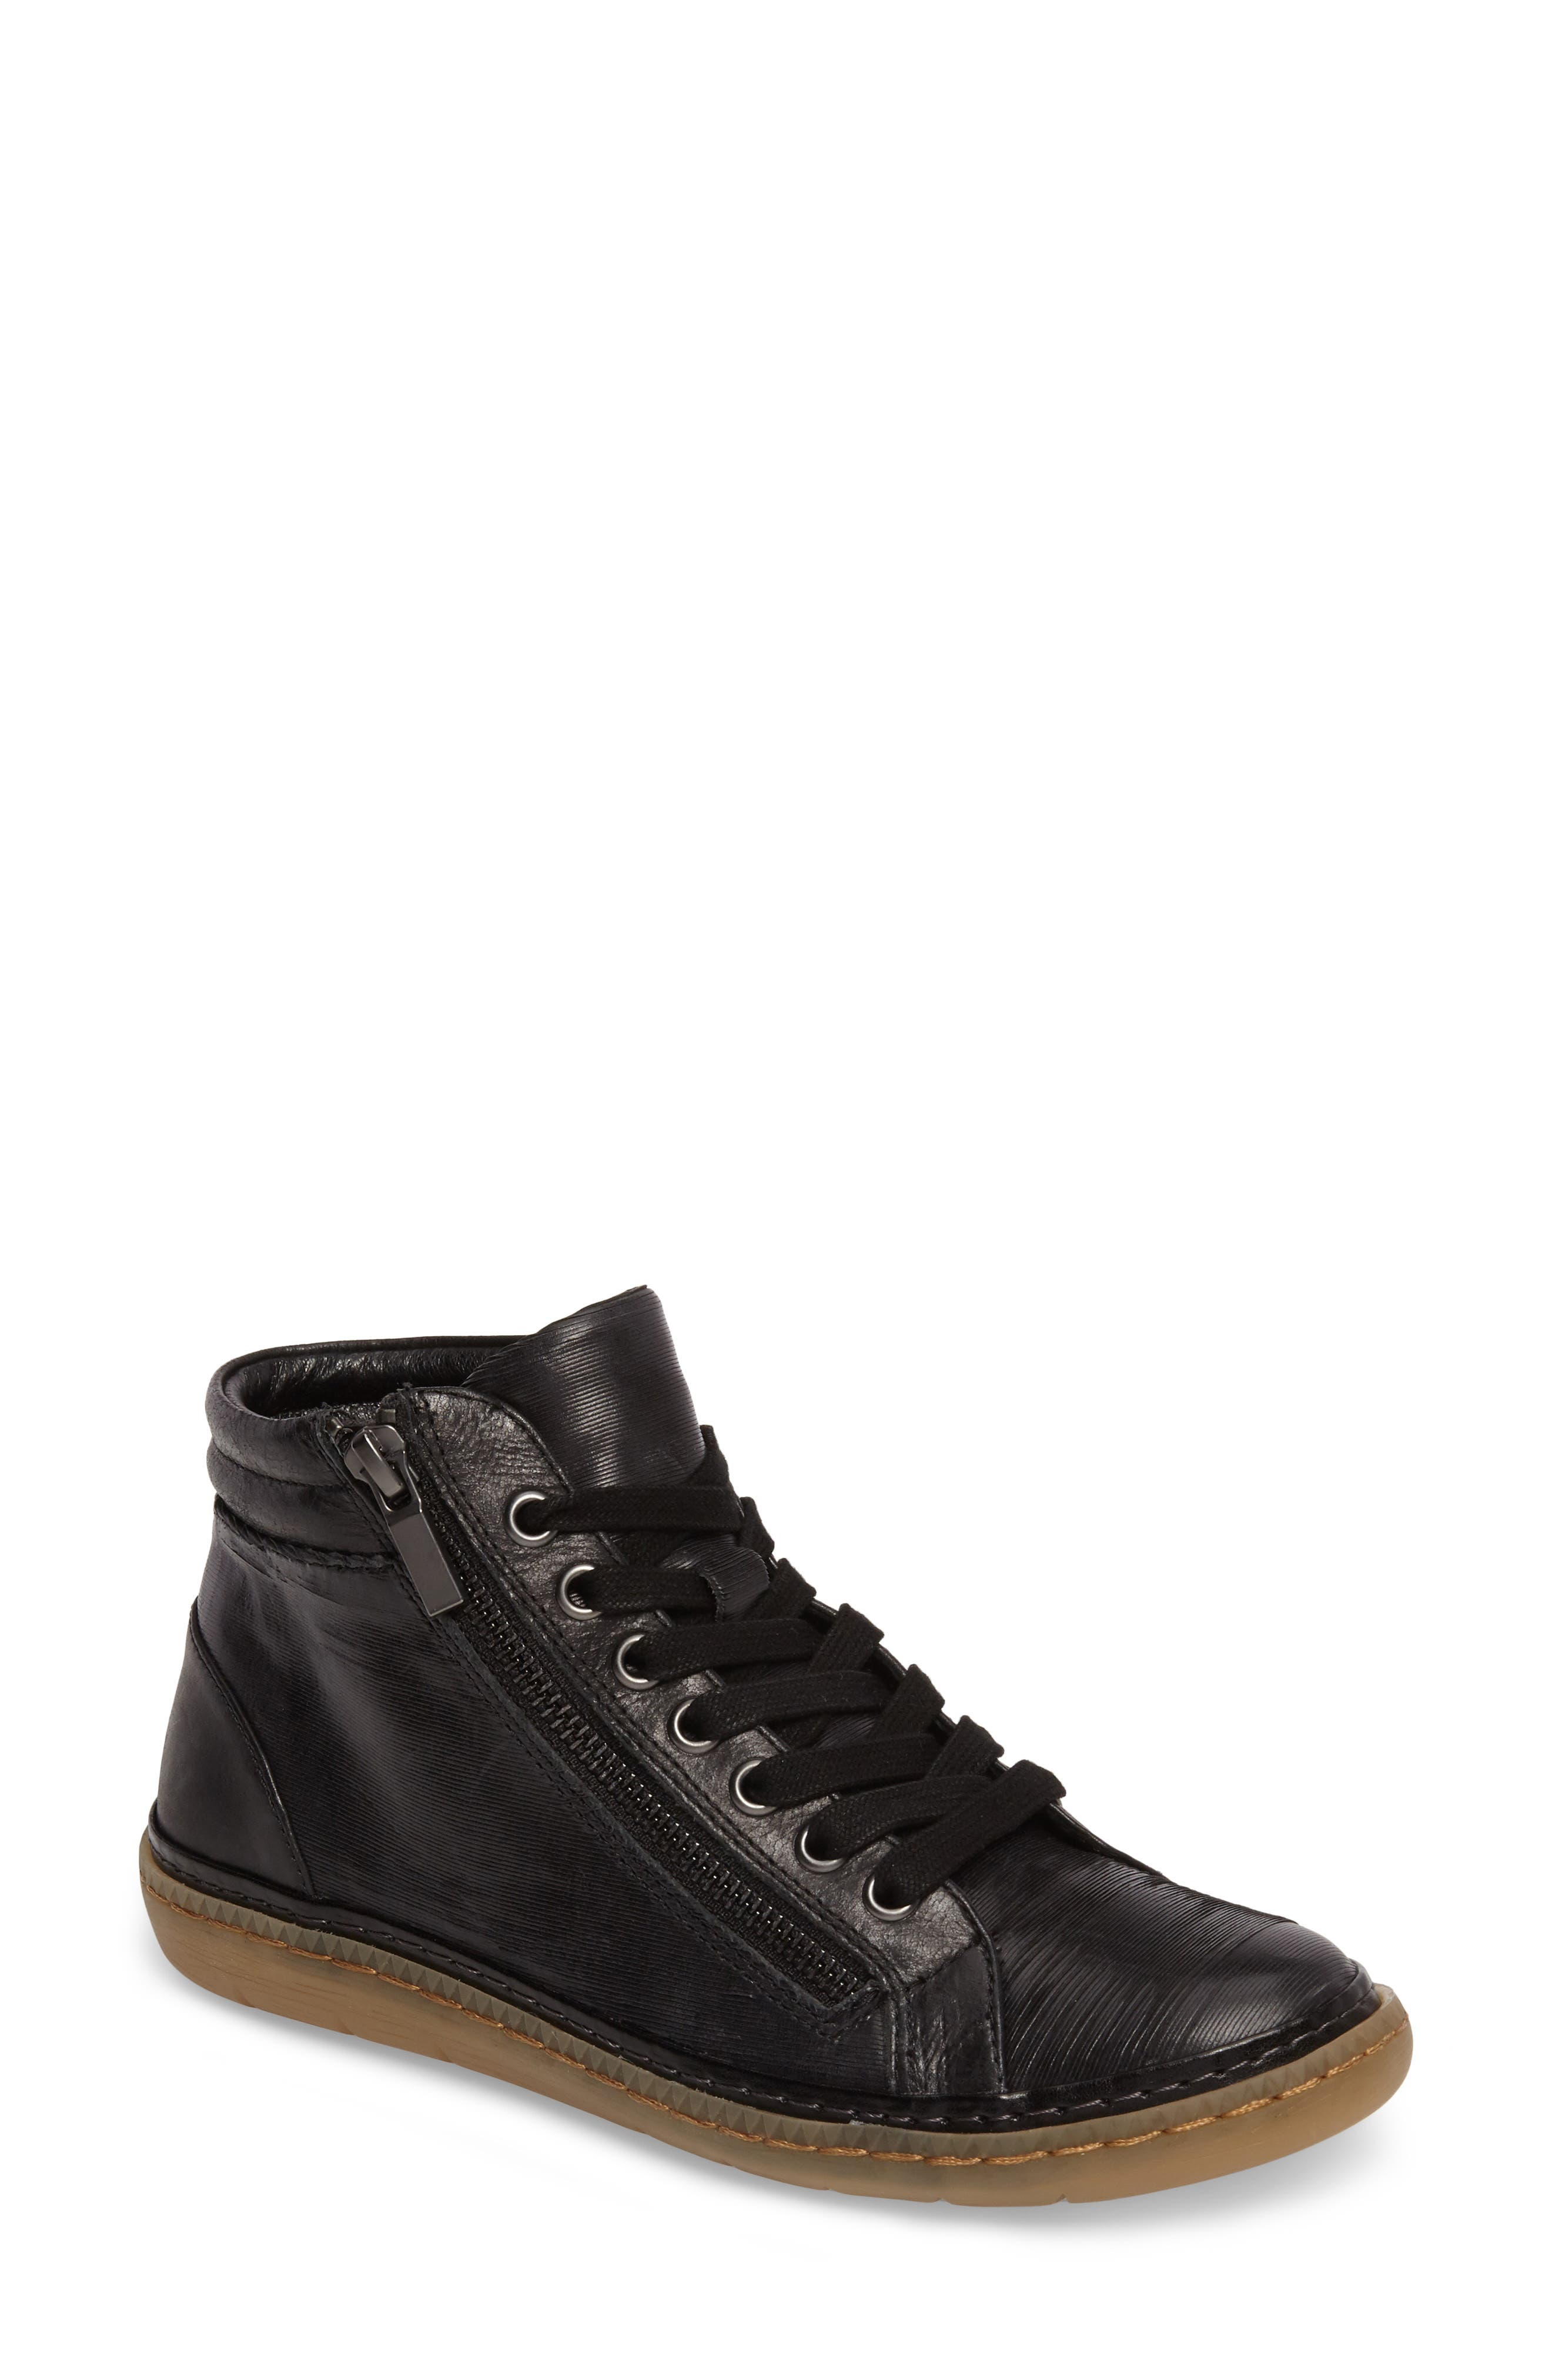 Annaleigh High Top Sneaker,                             Main thumbnail 1, color,                             BLACK LEATHER